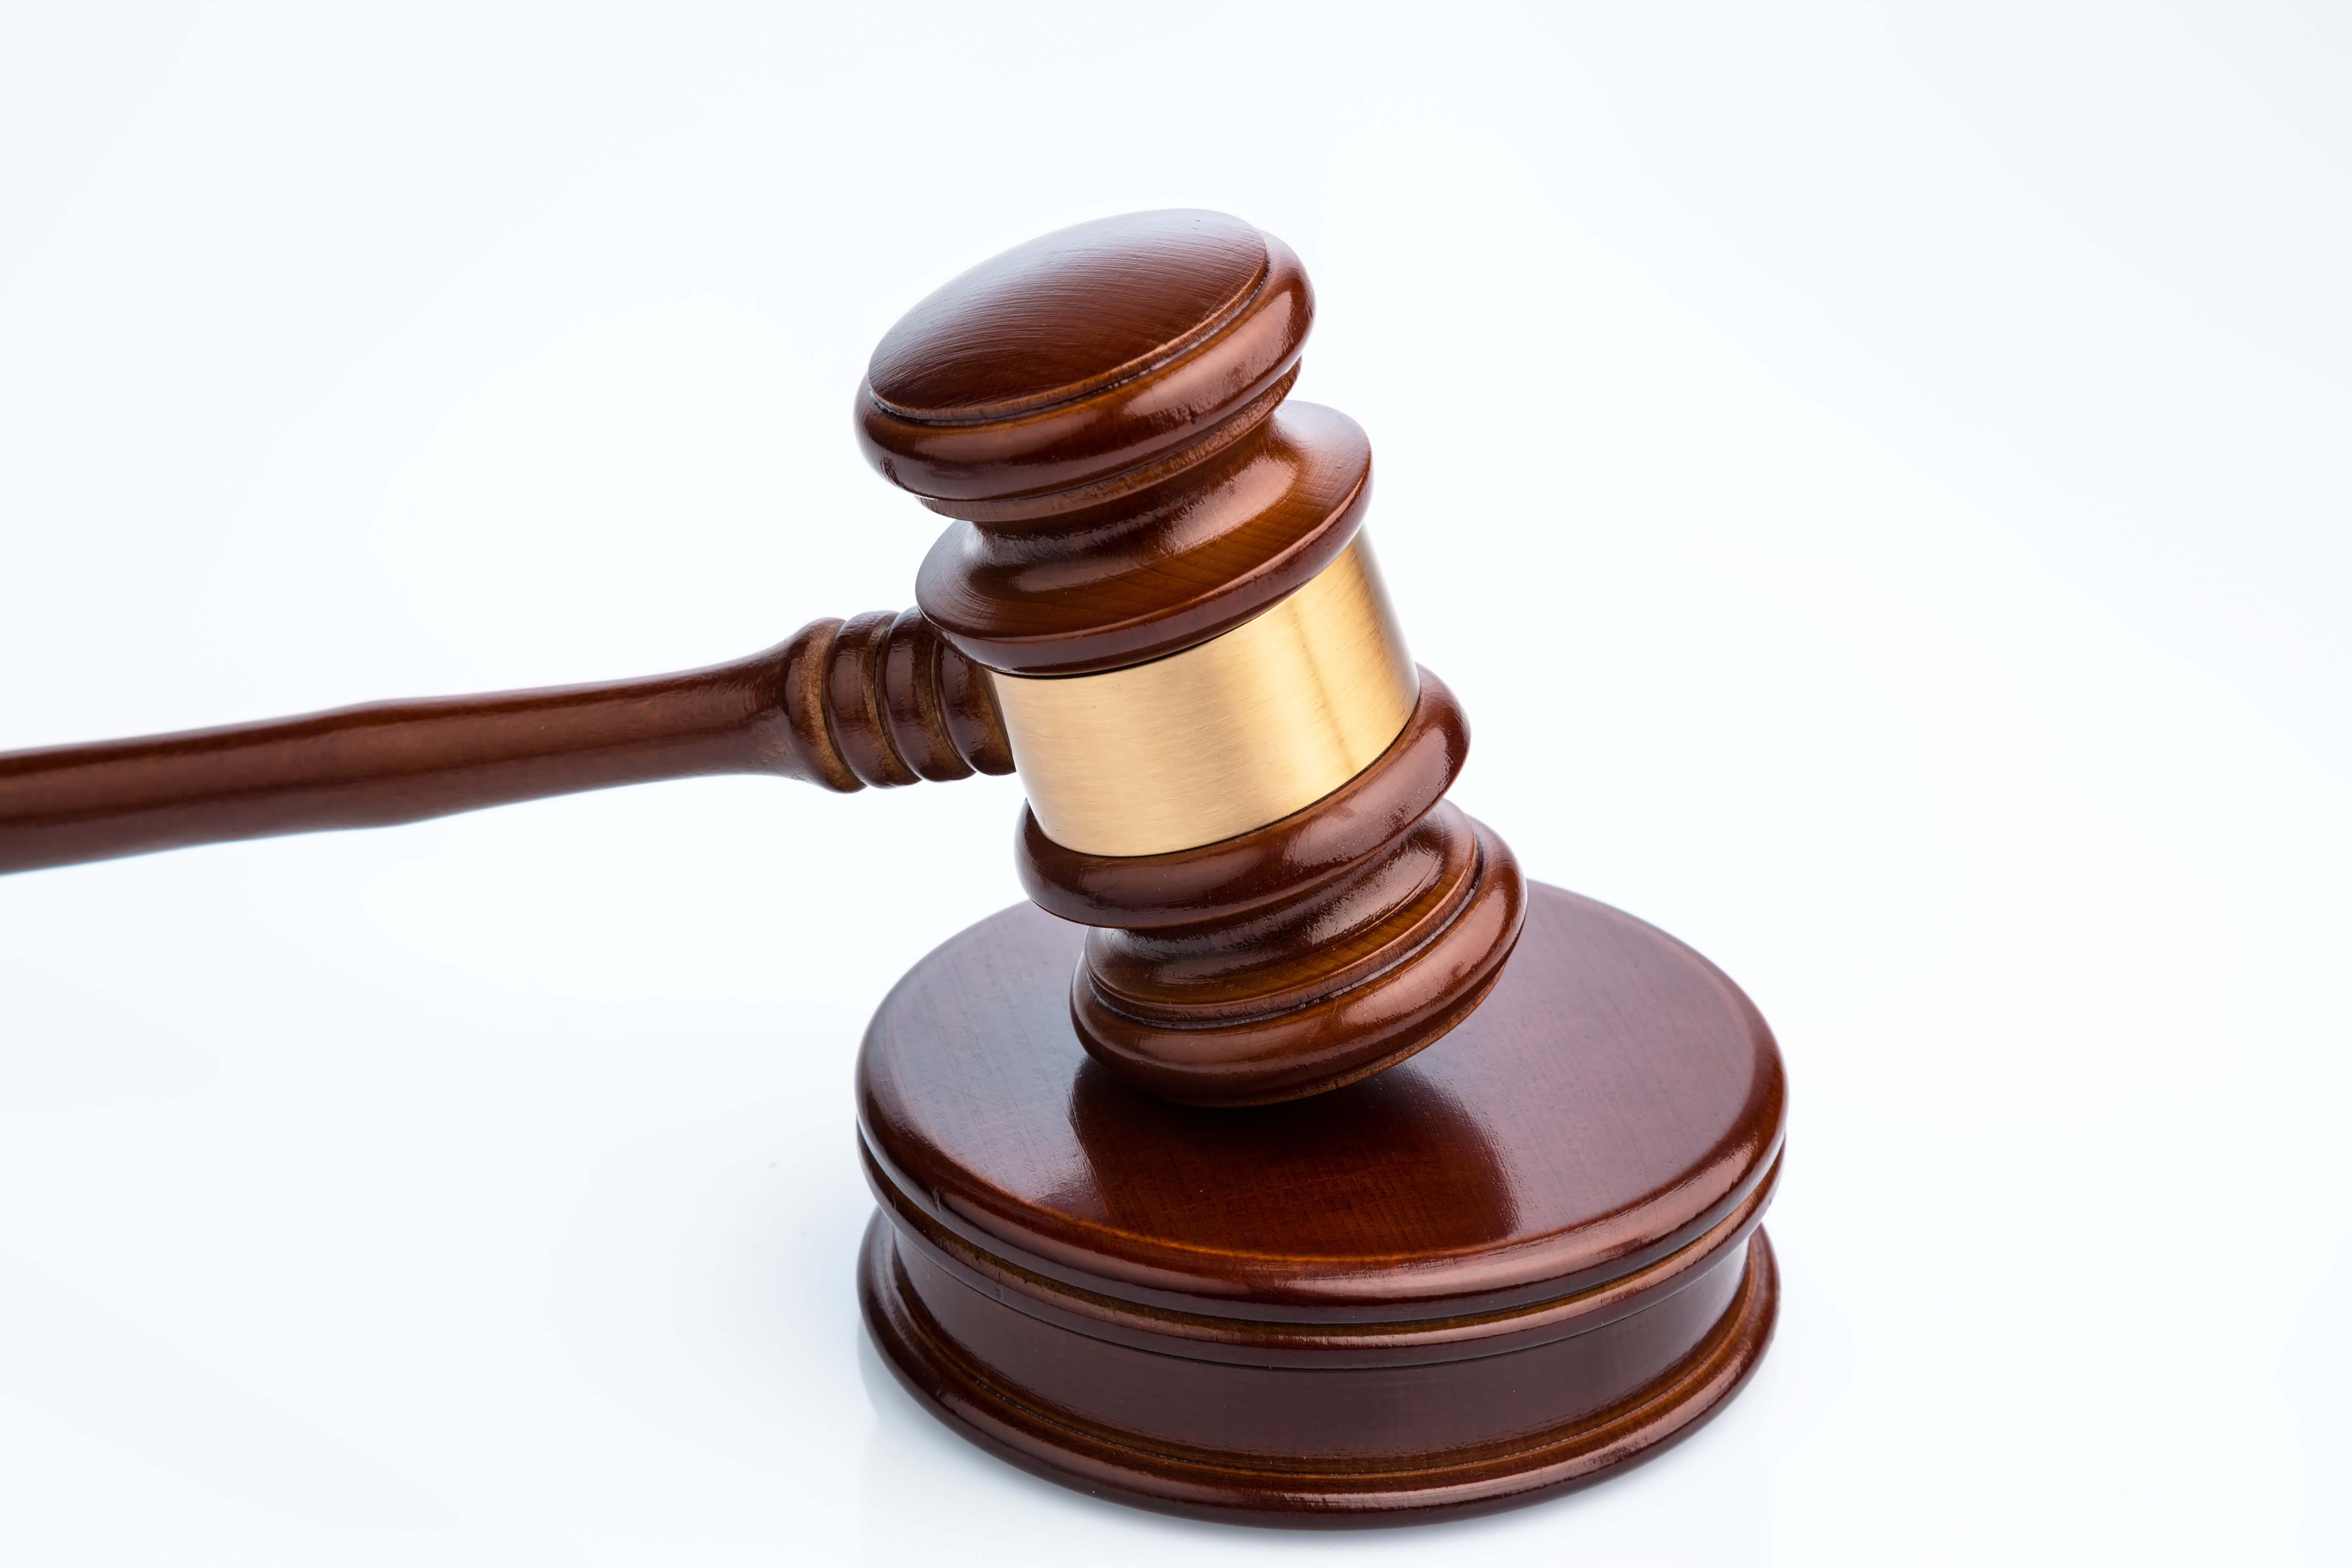 A court gavel on a table